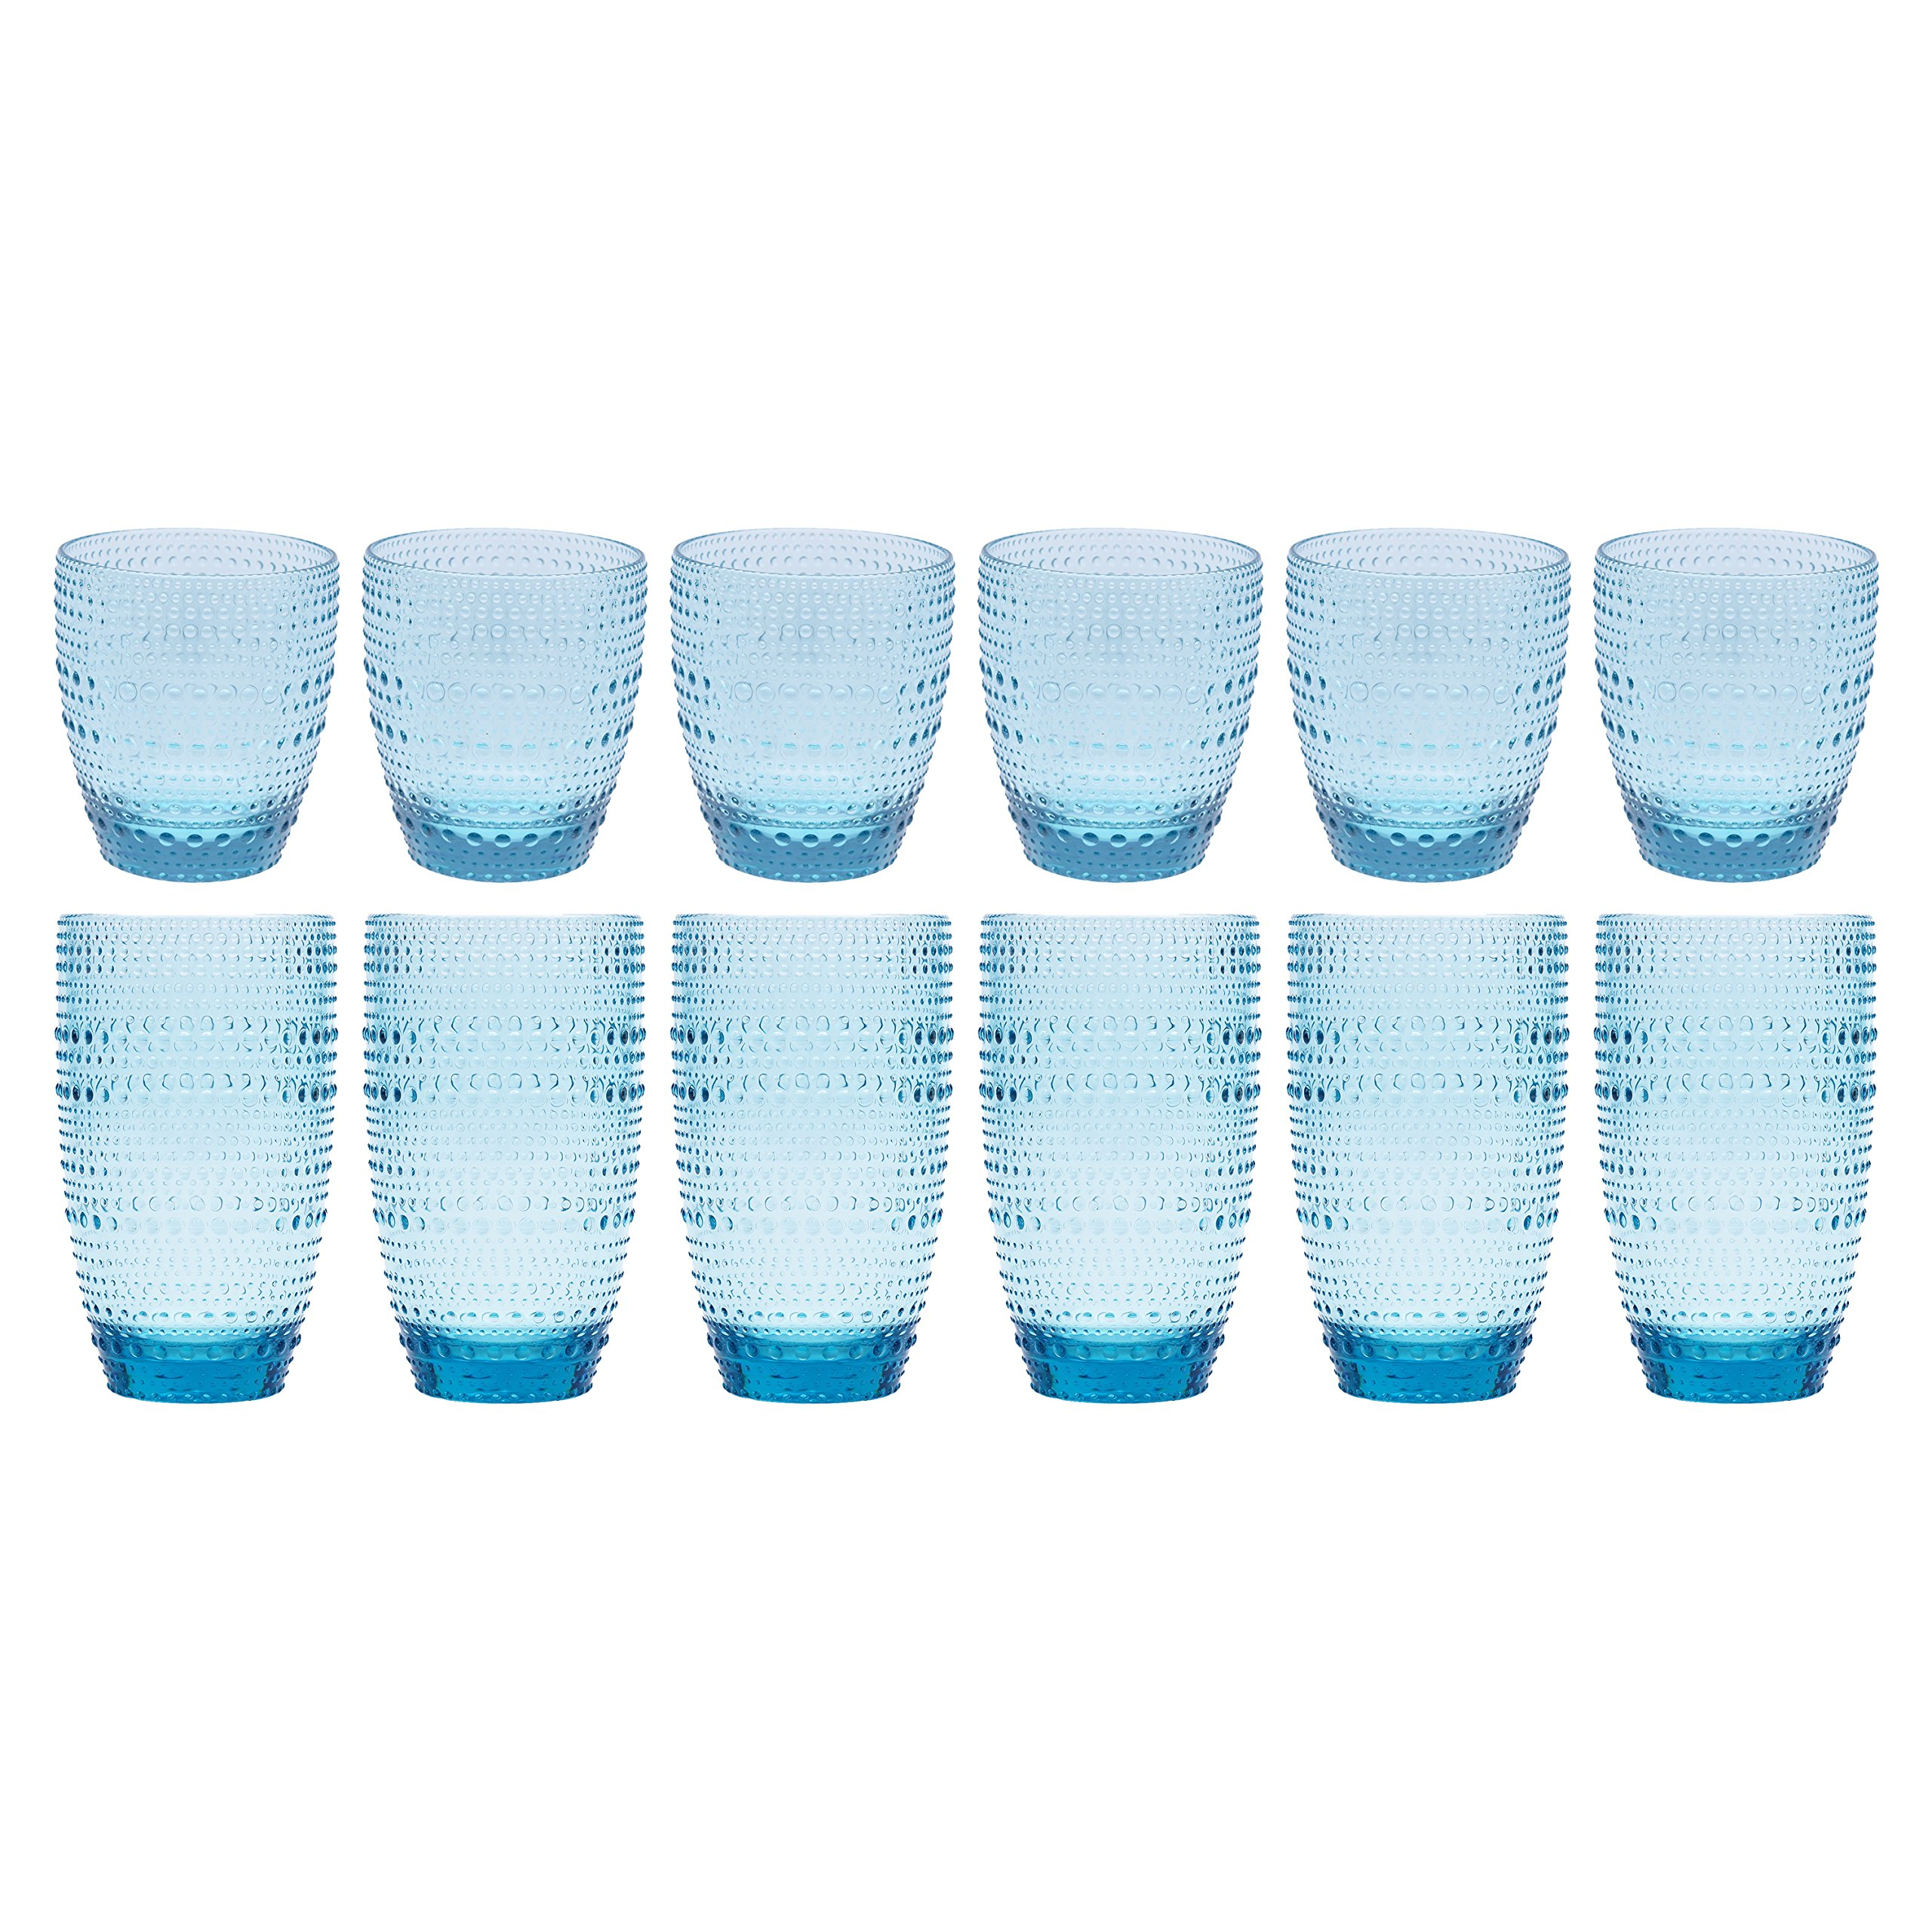 Clear Blue Acrylic Drinking Glasses, Decorative Break Resistant Tumblers for Everyday Use, Reusable Set of 12